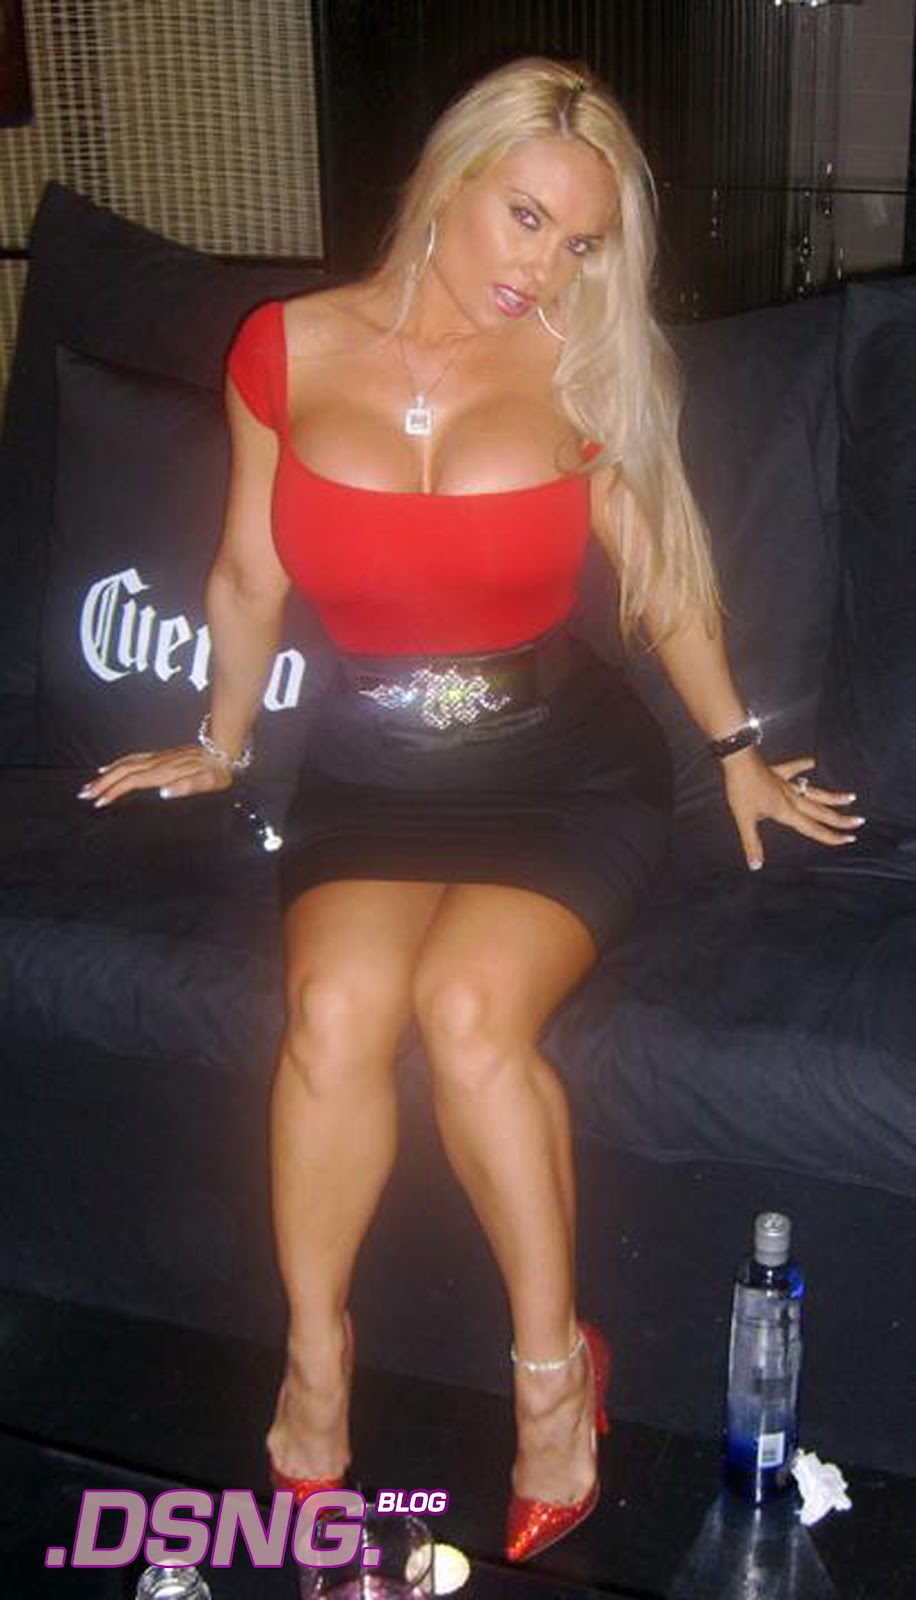 Dsngs Sci Fi Megaverse Coco Austin - Classic Photo Gallery-4643